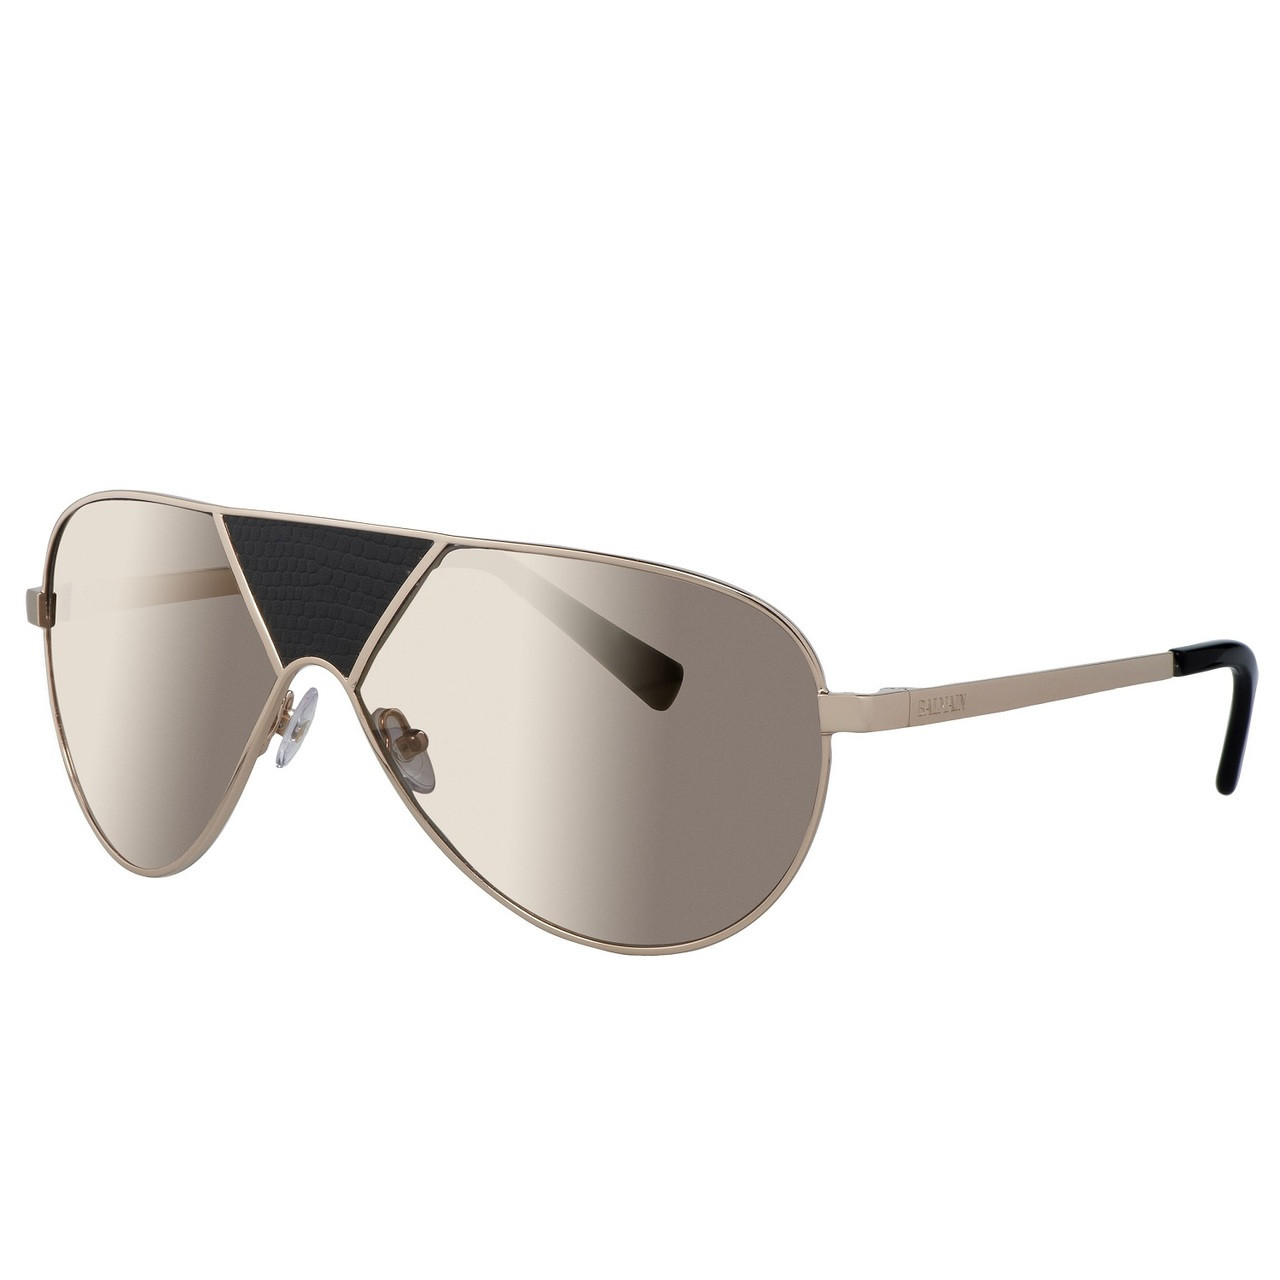 ea41031e758a4d Balmain Limited Edition STUDIO Mask Framed Aviator Sunglasses. Price:  $500.00. Image 1. Larger / More Photos